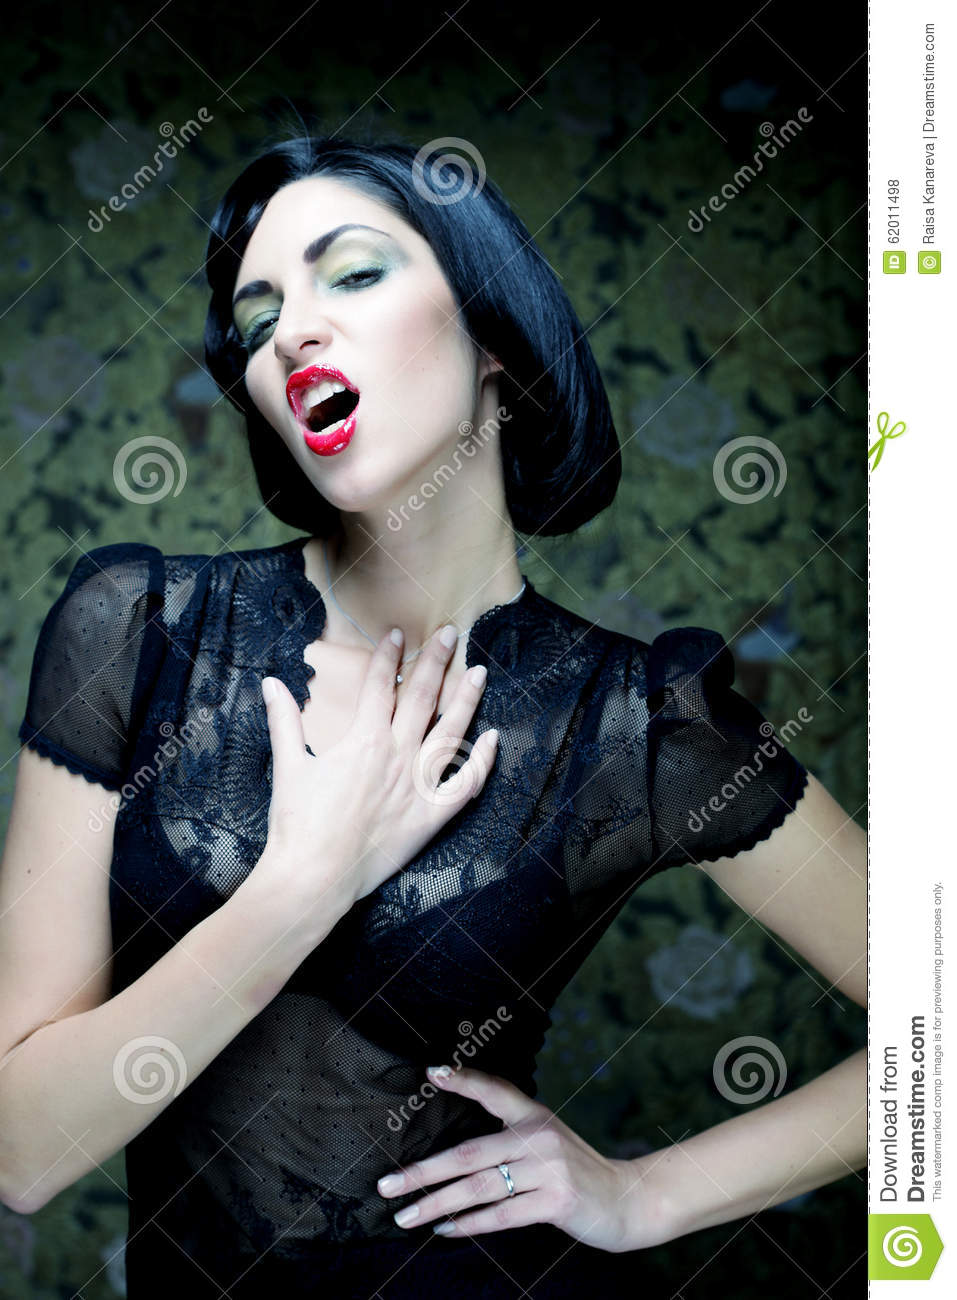 Fashion Art Girl Portrait Vamp Style Glamour Vampire Woman Stock Photo Image 62011498